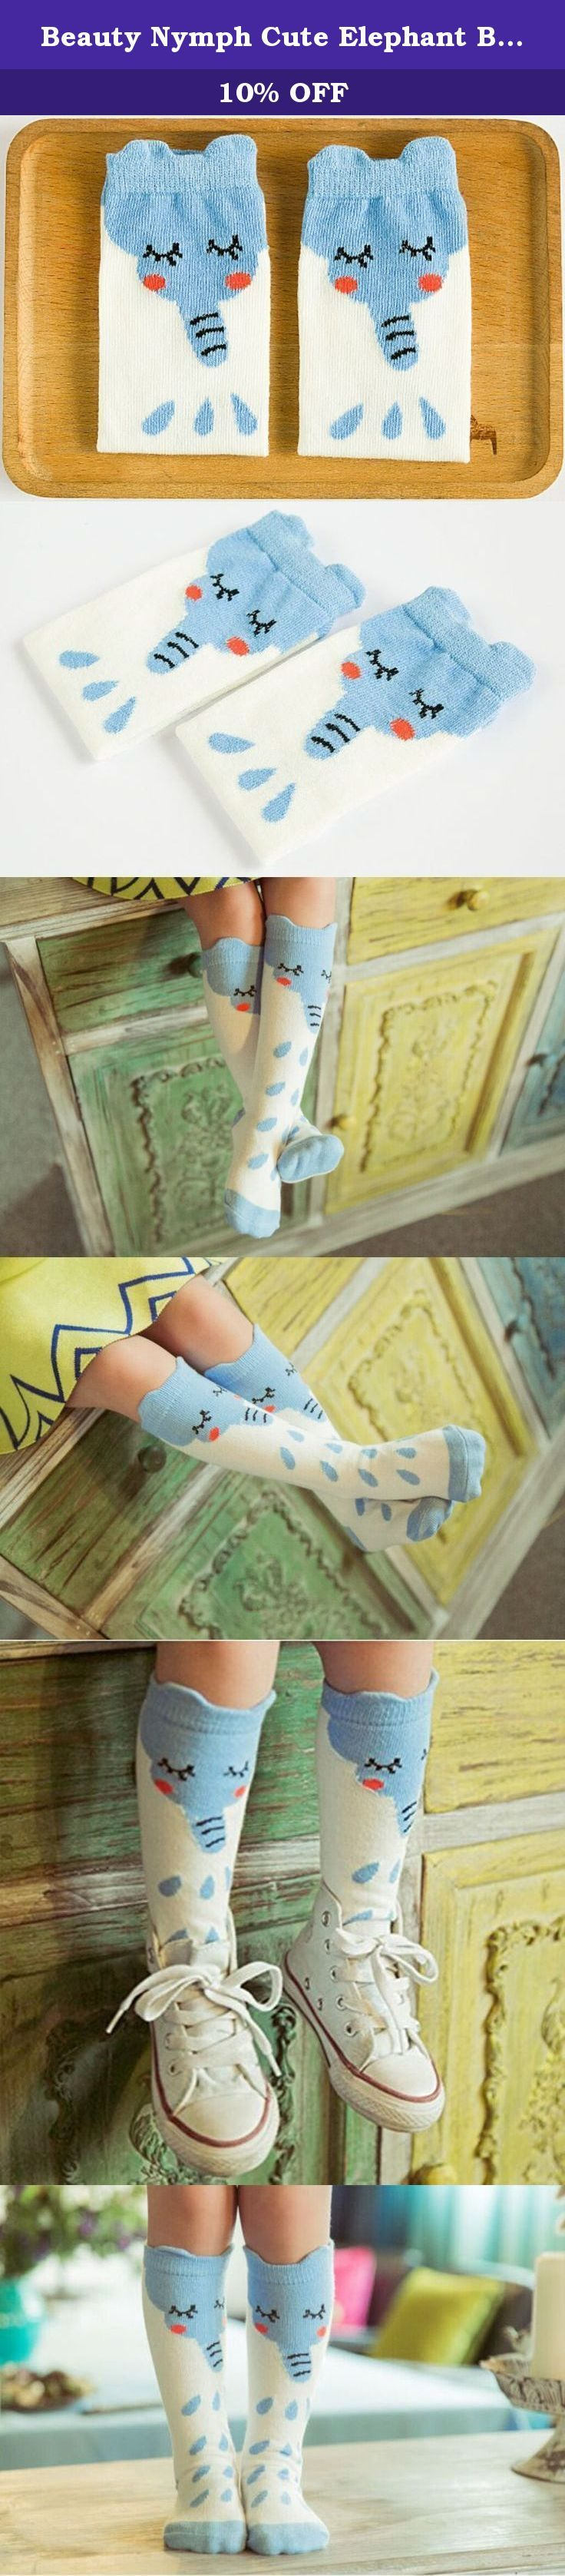 Beauty Nymph Cute Elephant Baby Knee High Stockings Tube Socks for Girls (S:(0-1year)). Two Pairs Cute Elephant Baby Knee High Stockings Tube Socks for Girls 100% Brand New and High Quality Color: Red Bow(White and Blue with Red Bow) Material: Cotton Blend,Nearly75% Cotton/22% Nylon/3% Spandex Fit age/length of socks sole :S(0-1Year)/(8-10cm);M(1-3 Years)/(10-13cm)L(4-6 Years)/(13-15cm) Features: Keep your baby warm with fashionable look Stylish and practical, durable and comfortable for...